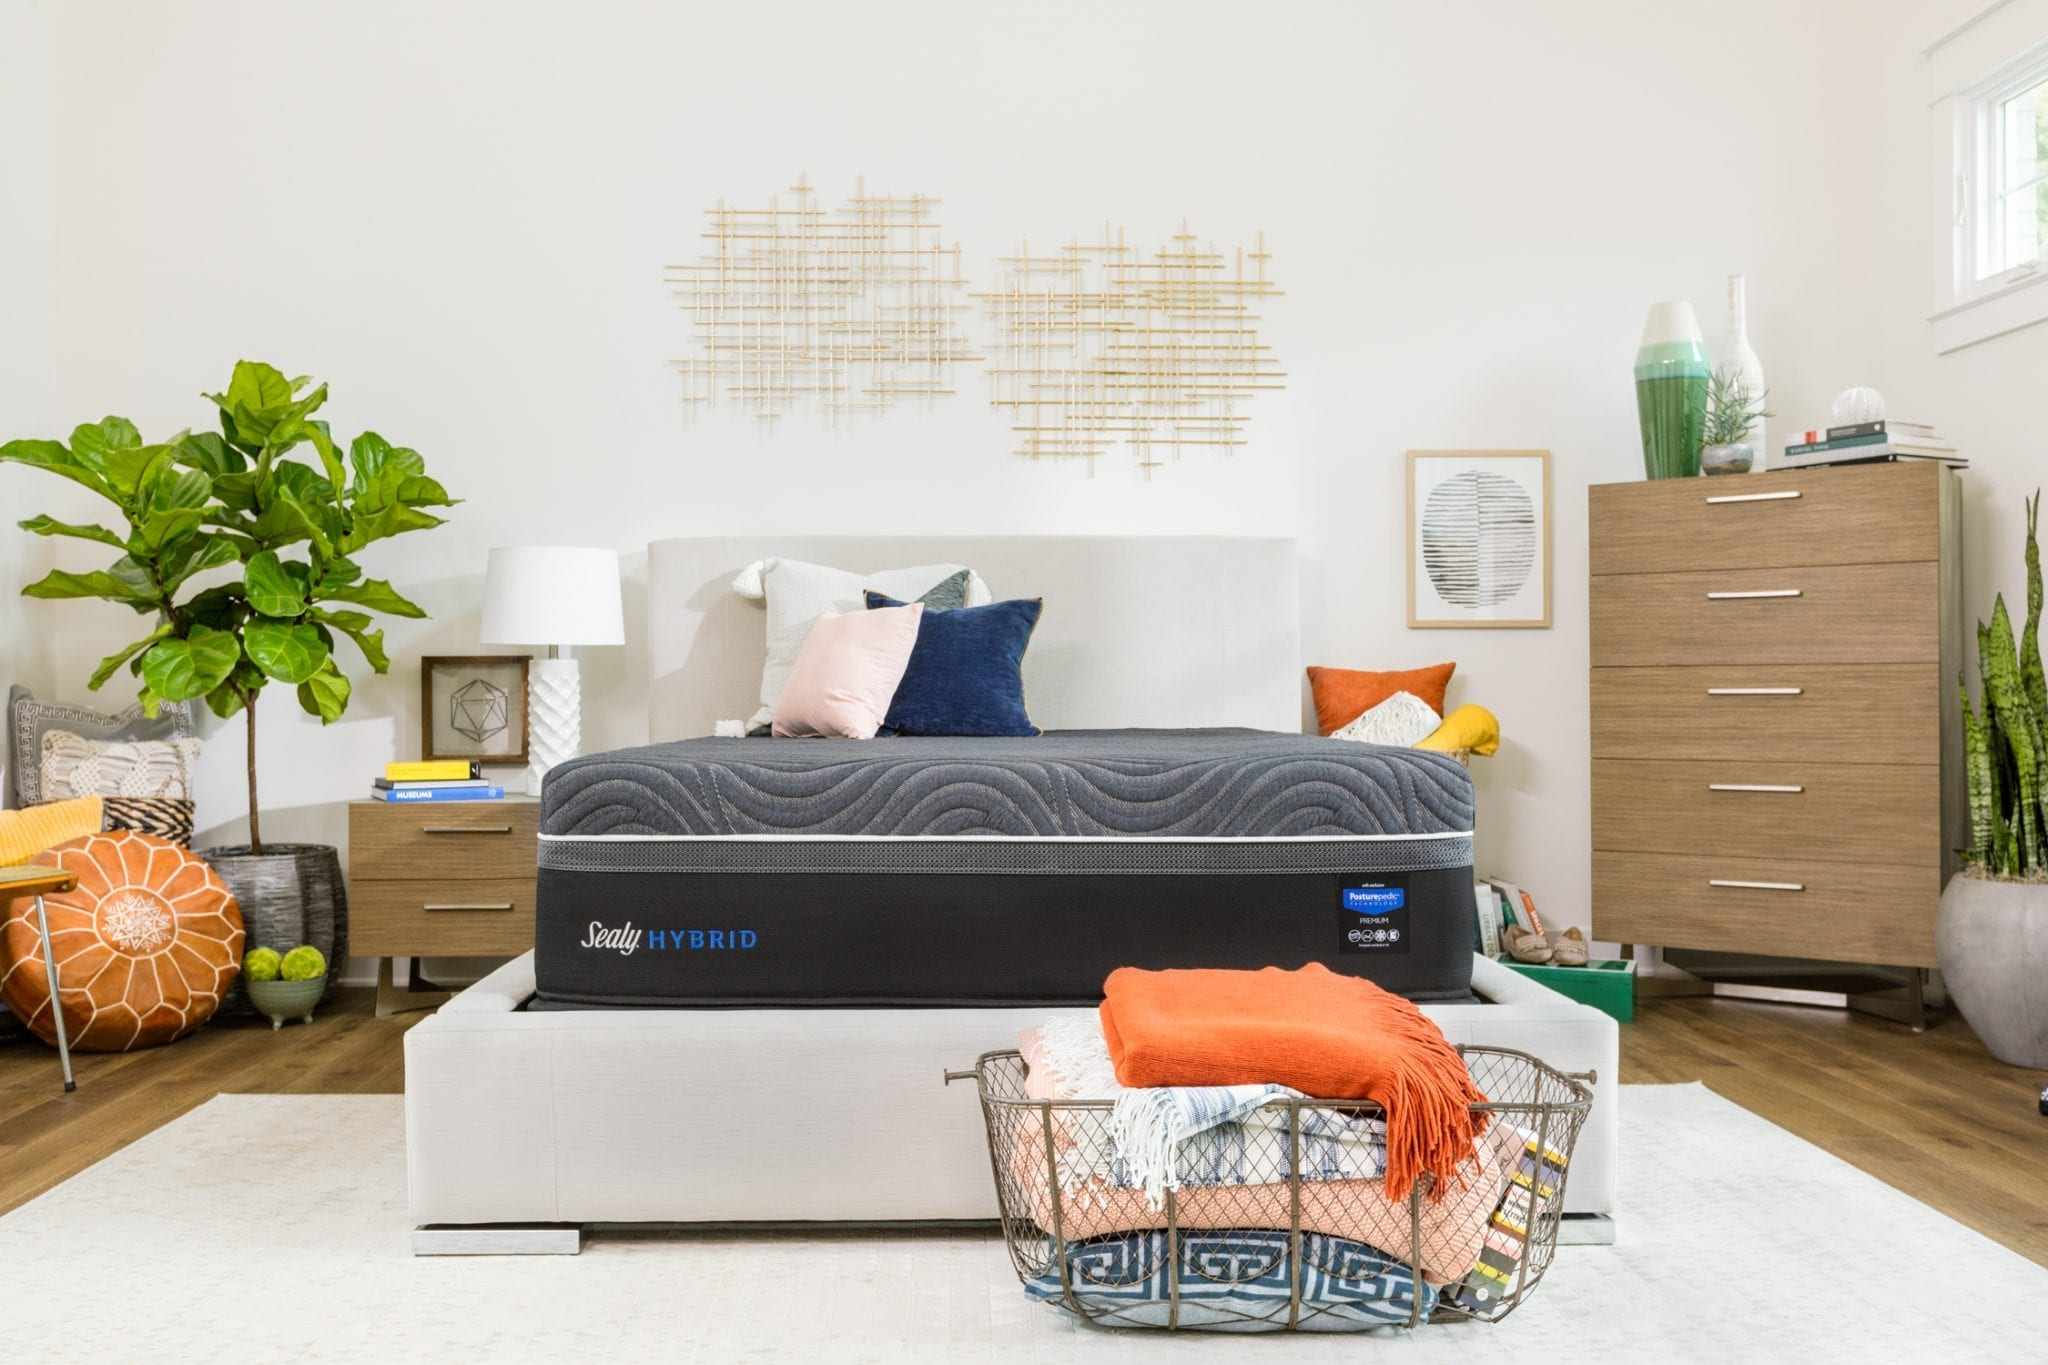 Sealy Hybrid mattress in a decorated bedroom.